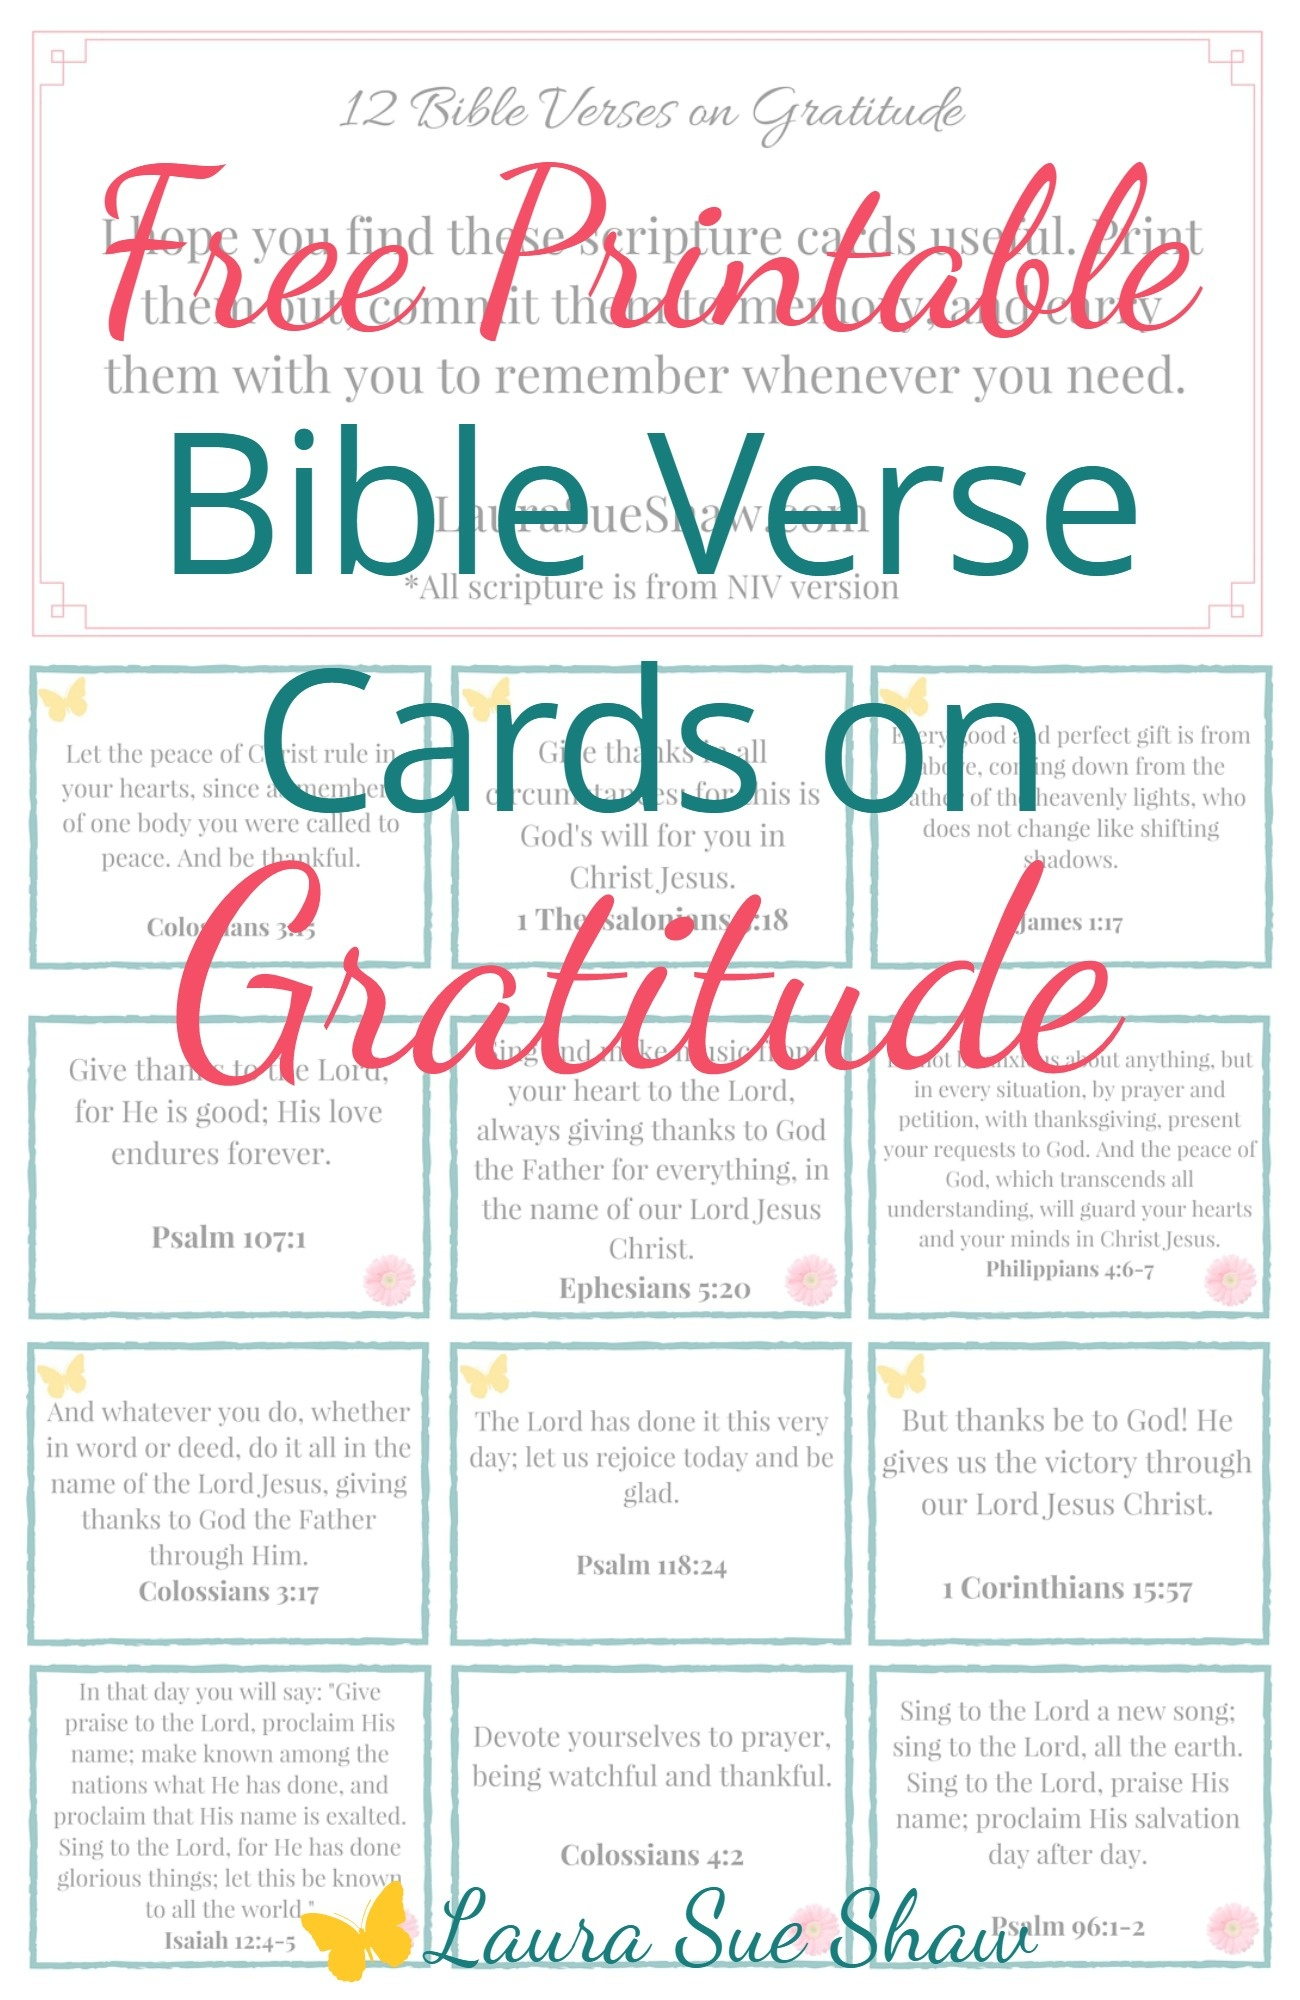 Free Printable Bible Verse Cards On Gratitude - Laura Sue Shaw - Free Printable Bible Verse Cards